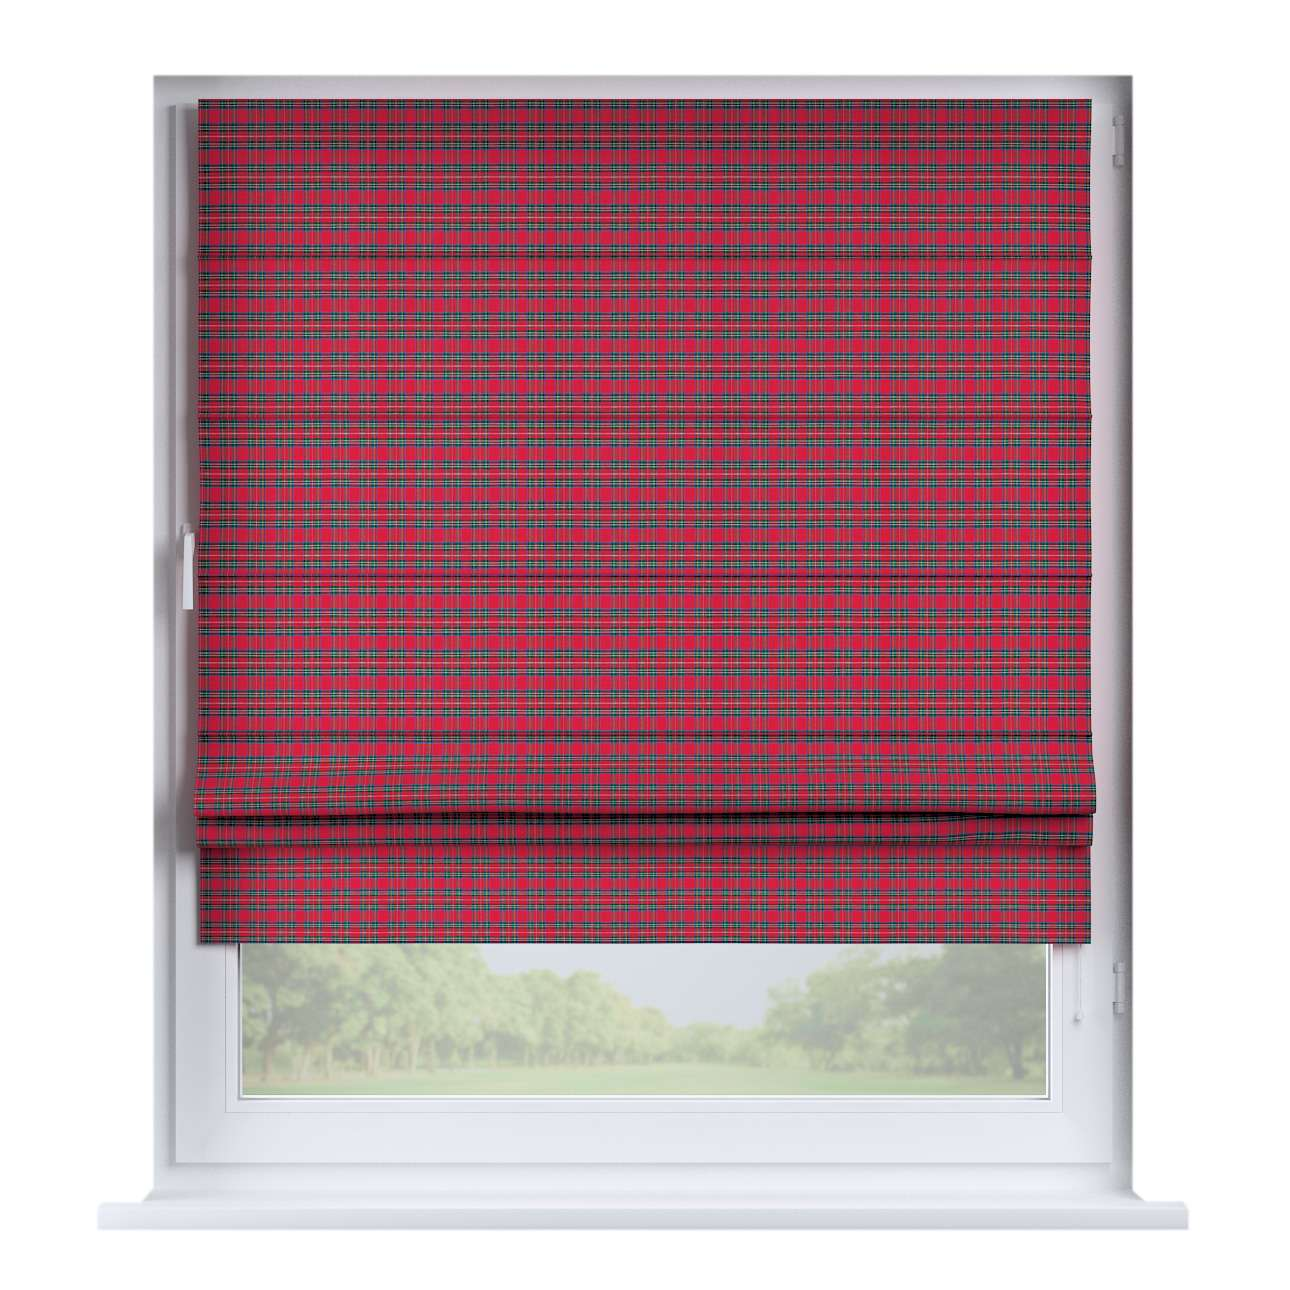 Padva roman blind  80 x 170 cm (31.5 x 67 inch) in collection Bristol, fabric: 126-29